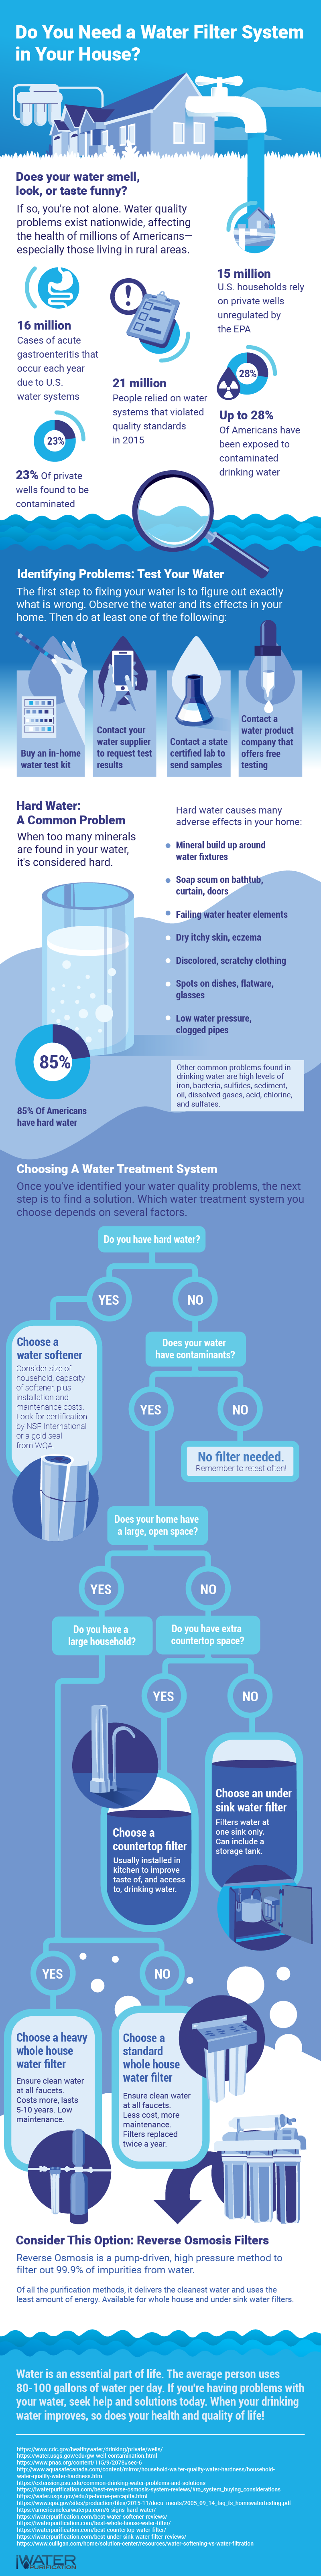 Water Filter & Treatment System Buying Guide by iWaterPurification